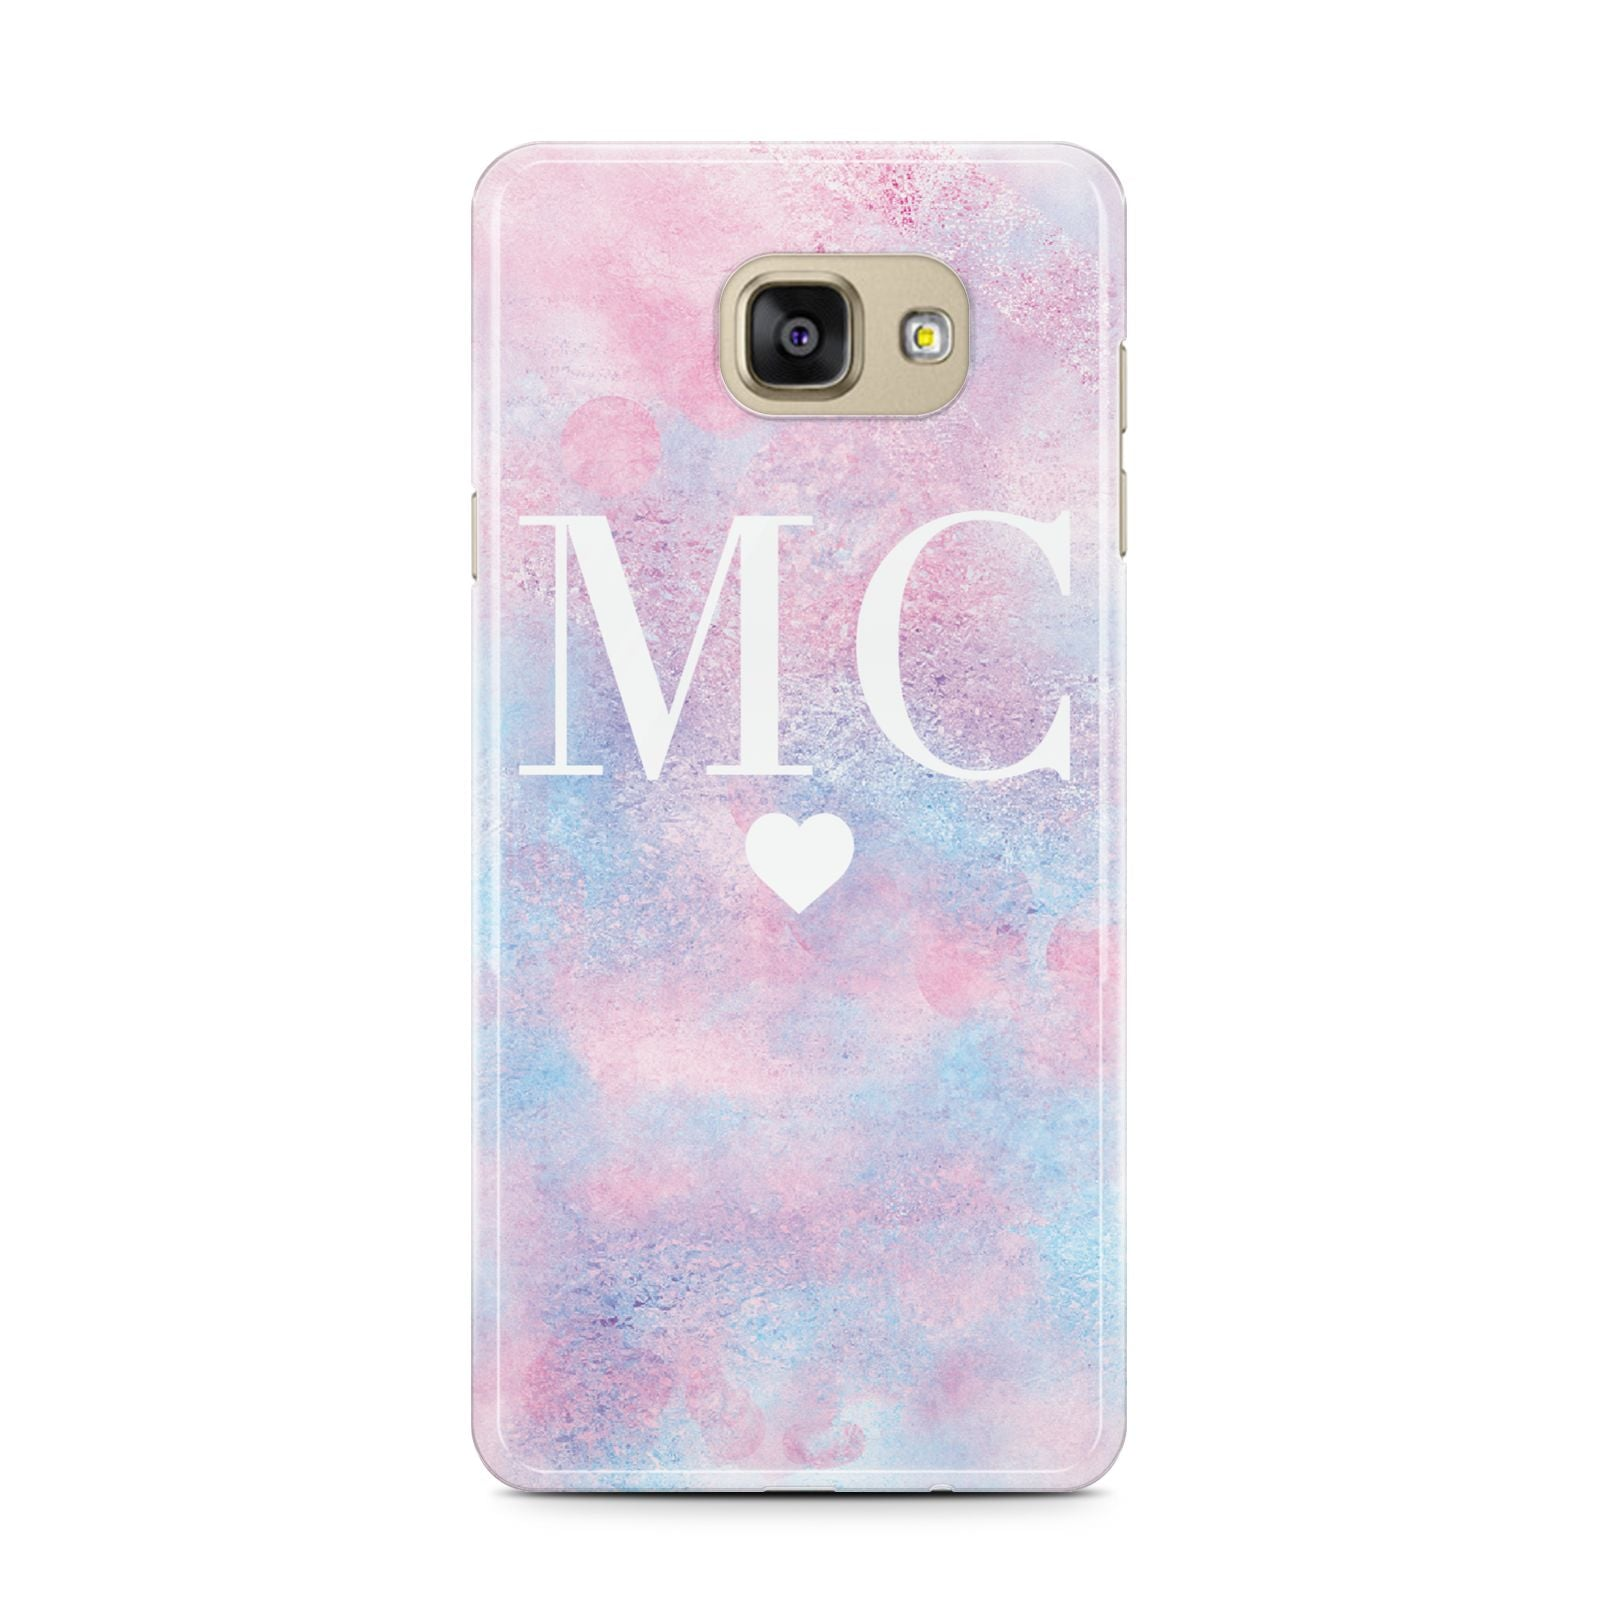 Personalised Cotton Candy Marble Initials Samsung Galaxy A7 2016 Case on gold phone